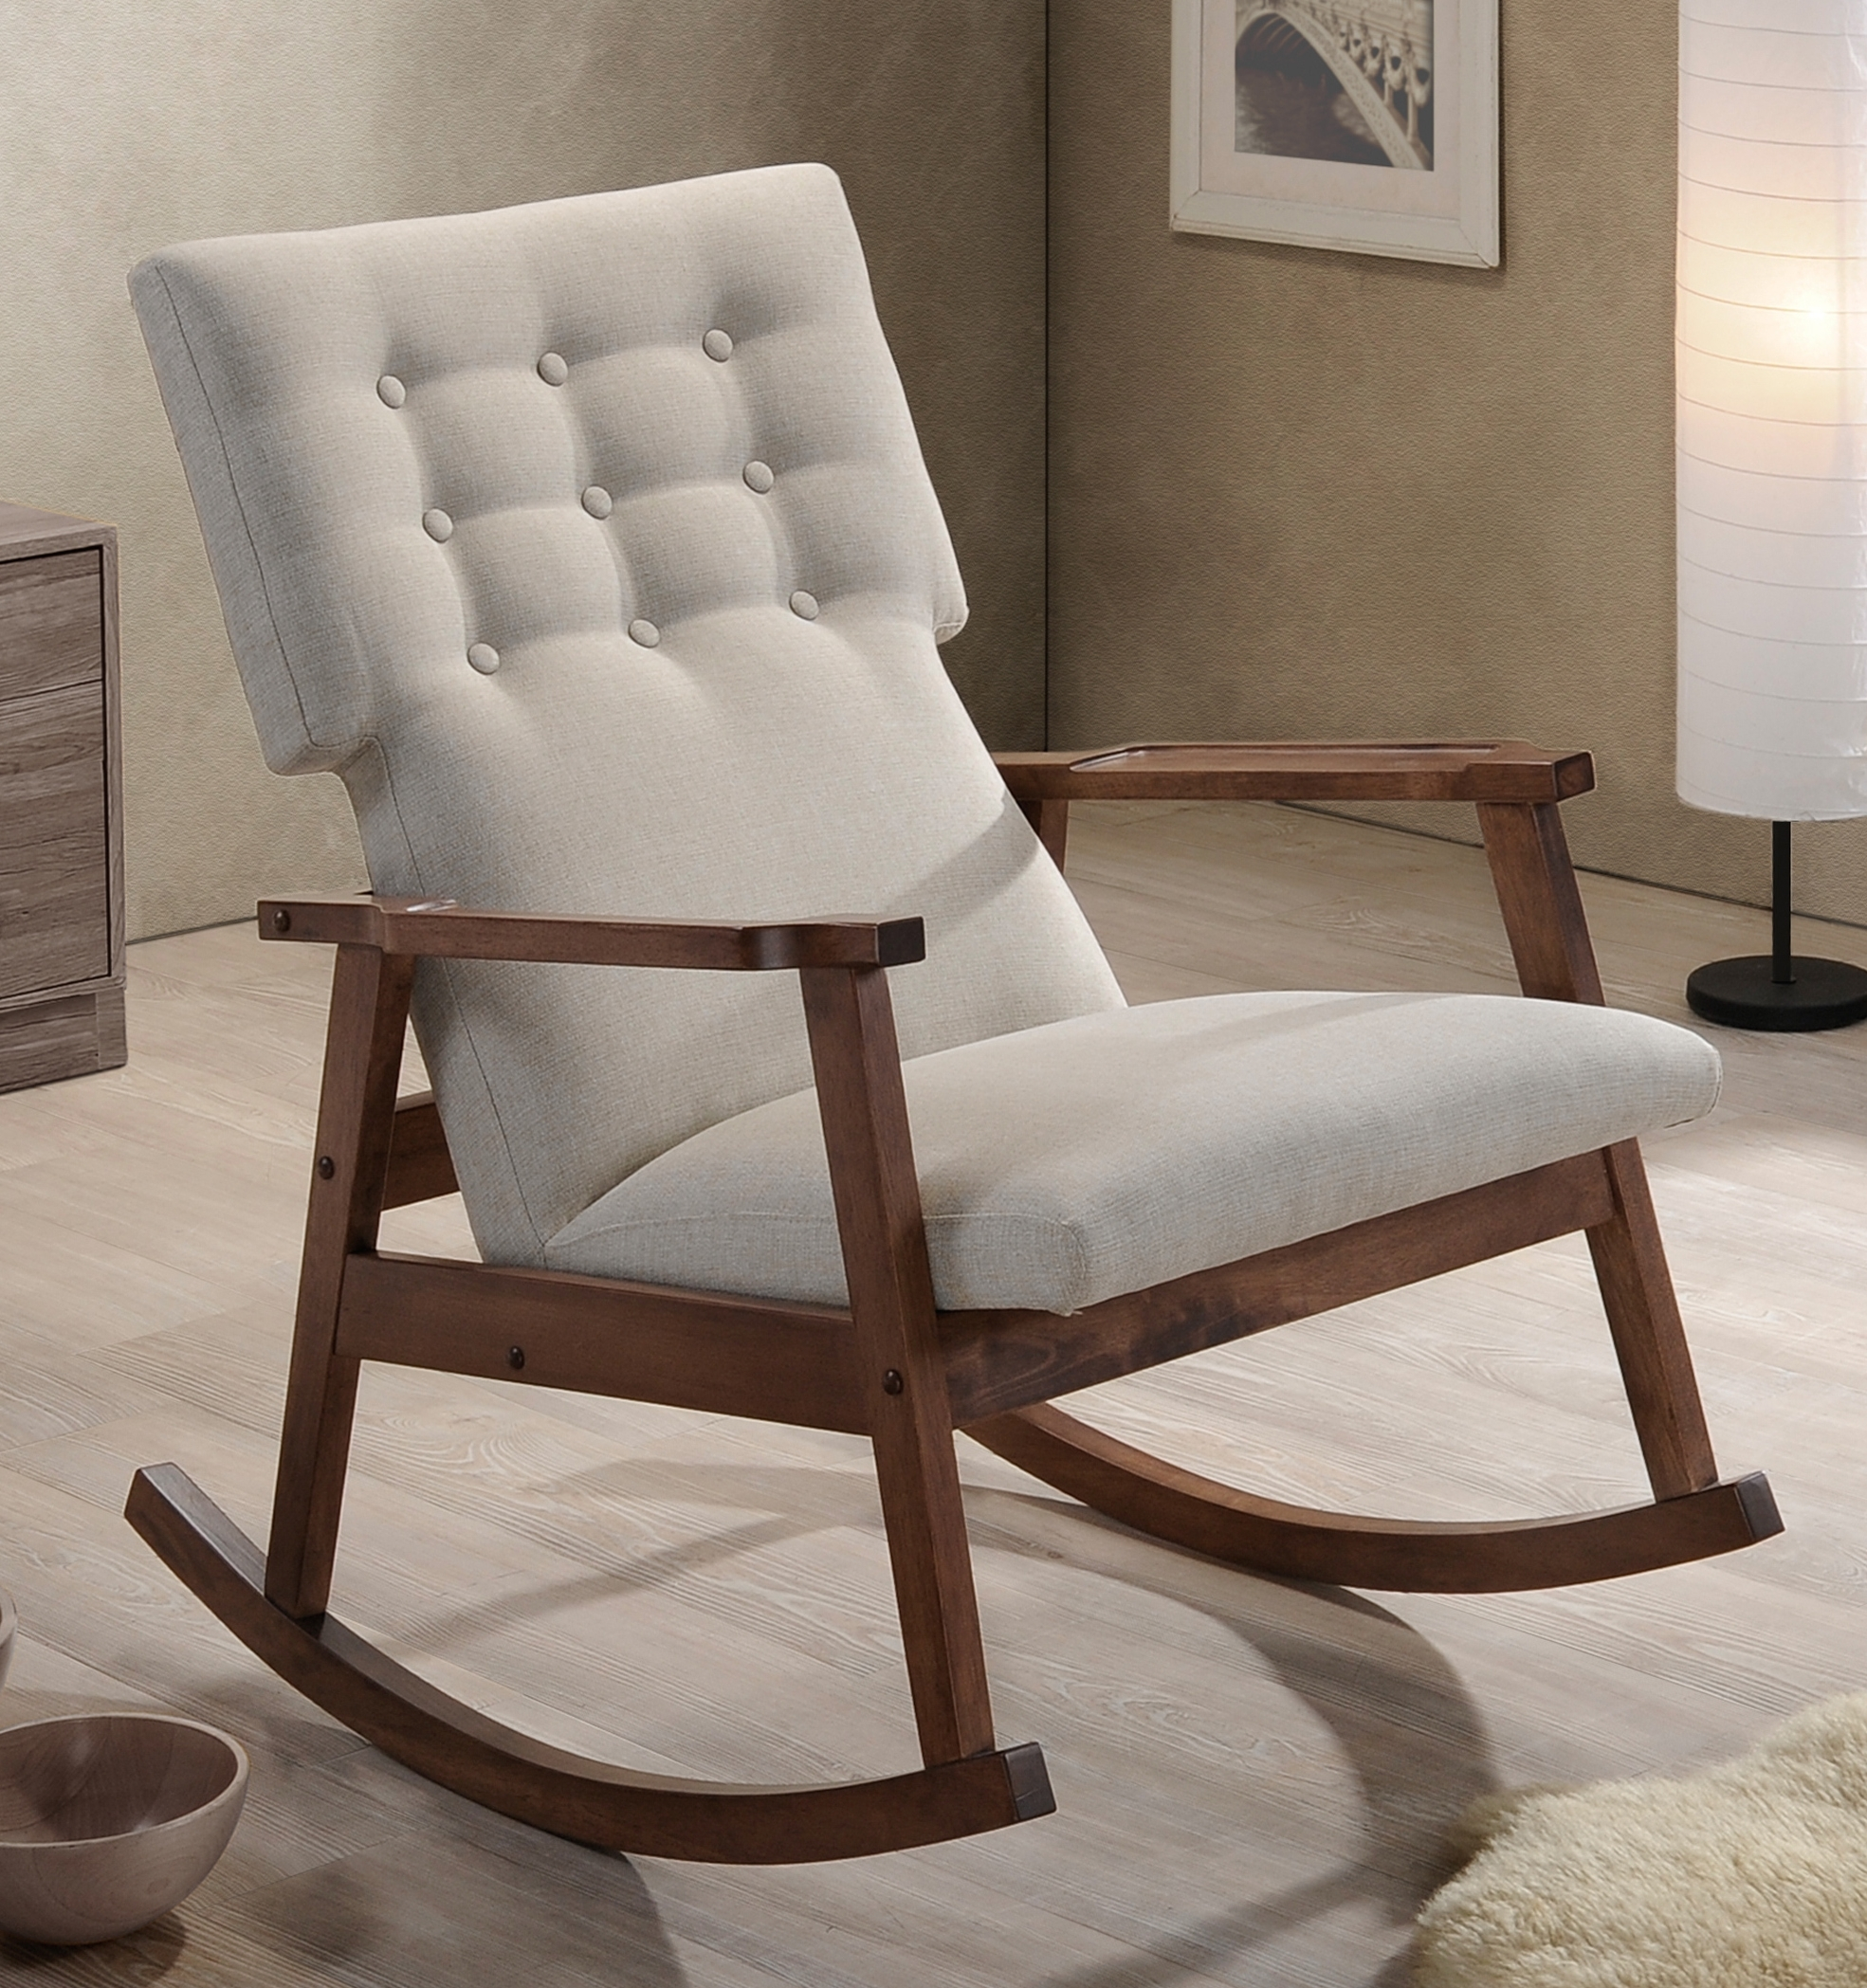 2018 Rocking Chairs At Wayfair Pertaining To Livingroom : Agreeable Fabric Rocking Chairs Living Room Furniture (View 1 of 20)